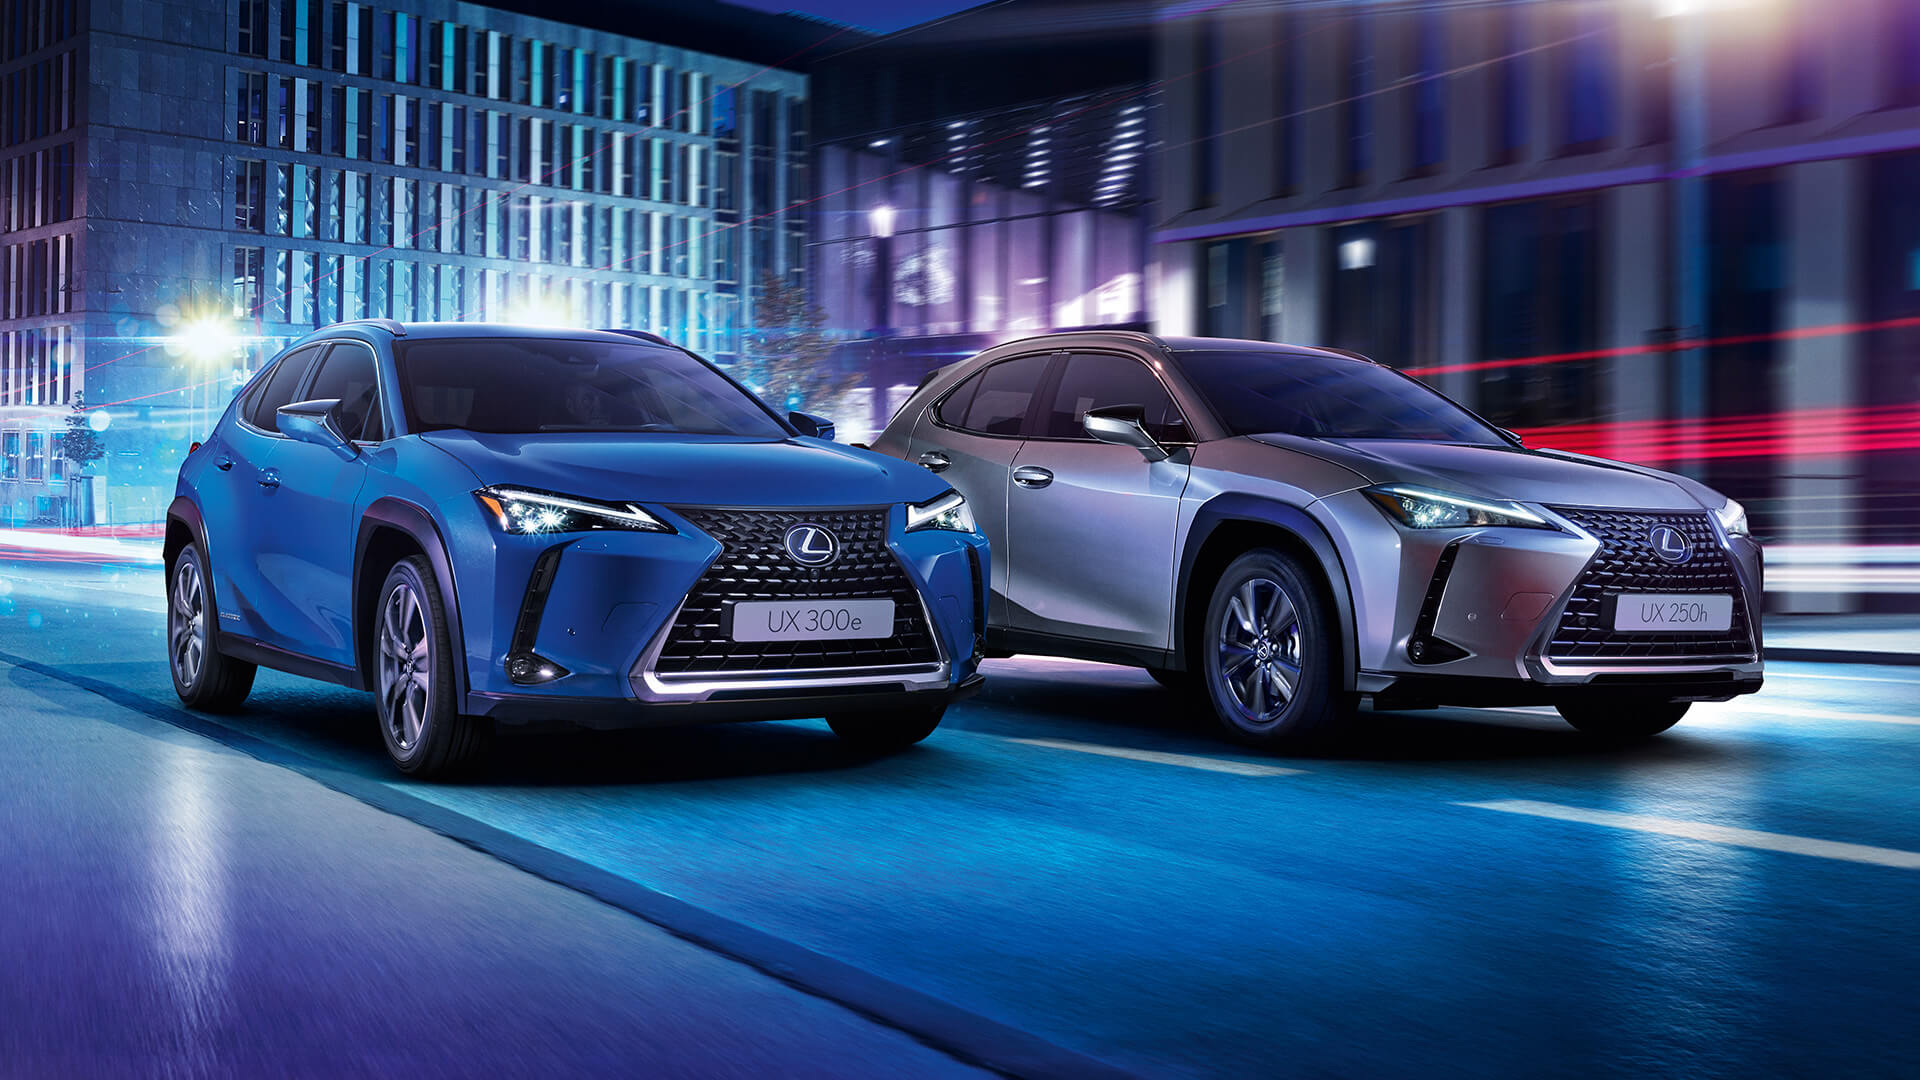 2020 lexus next steps lexus electrified 1920 1080